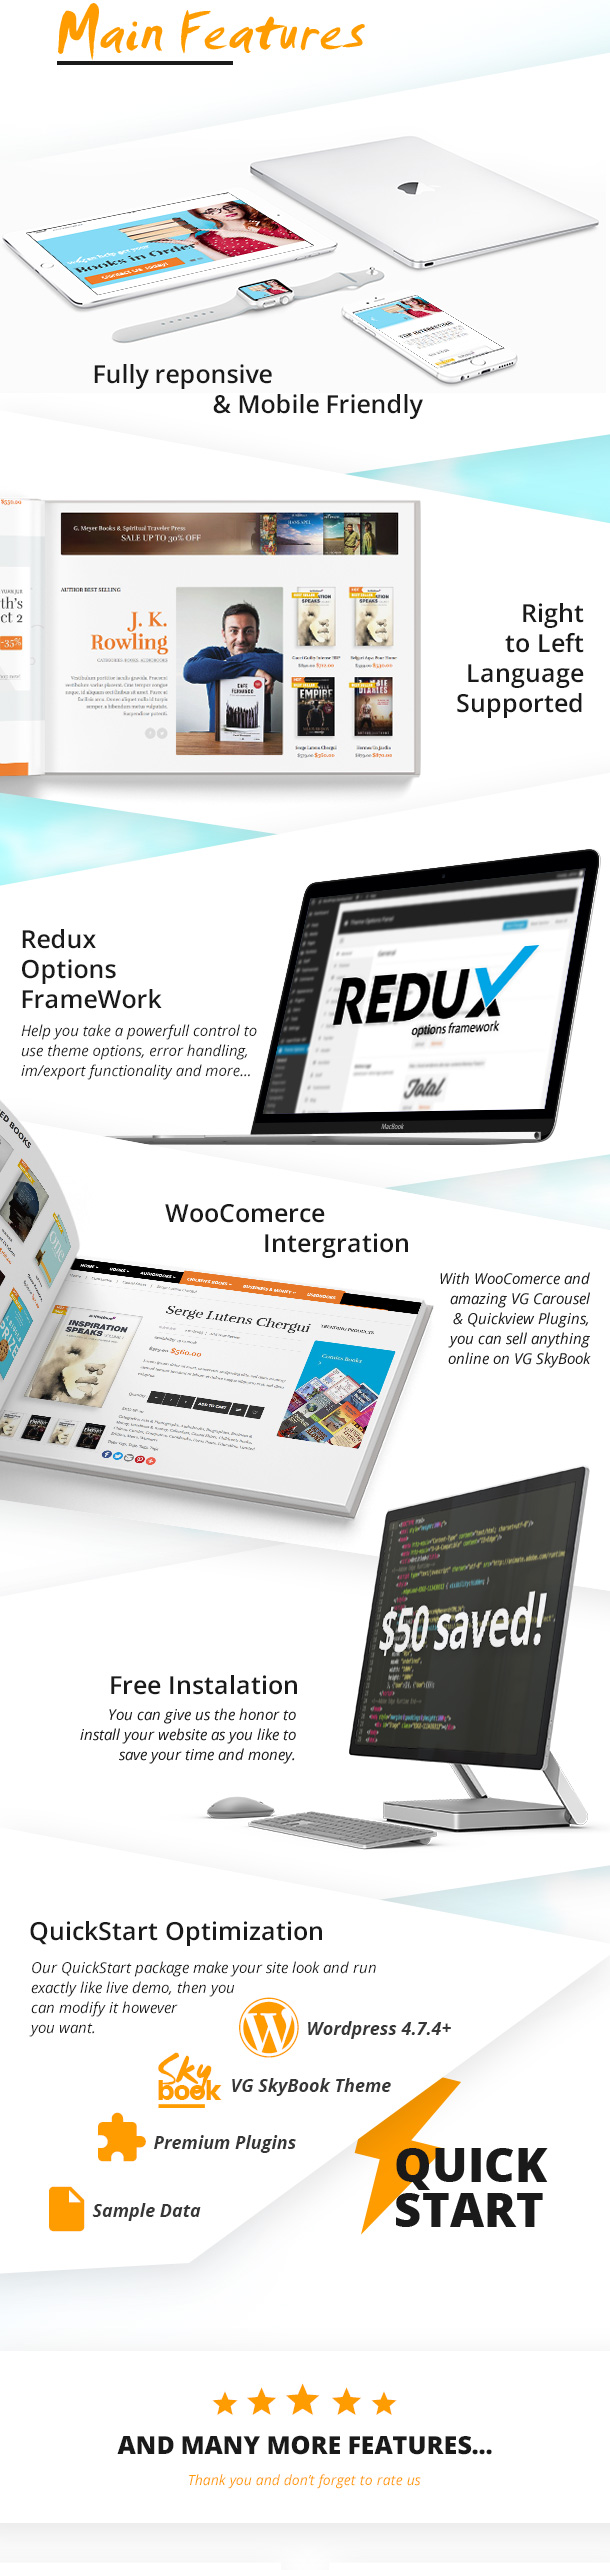 VG Skybook - WooCommerce Theme For Book Store - 18